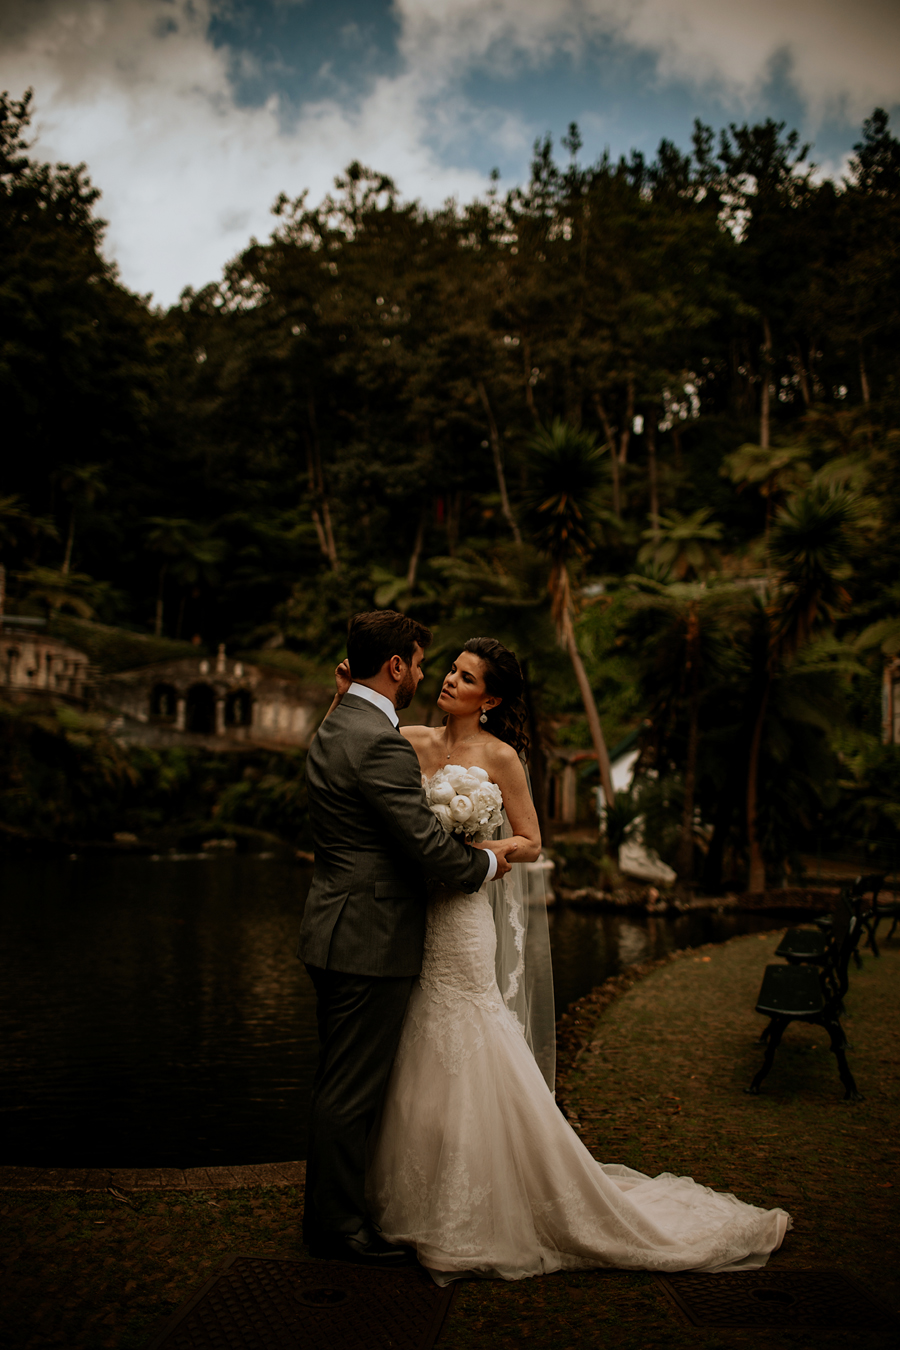 albumweddings_madeira_wedding_photographer1744.jpg